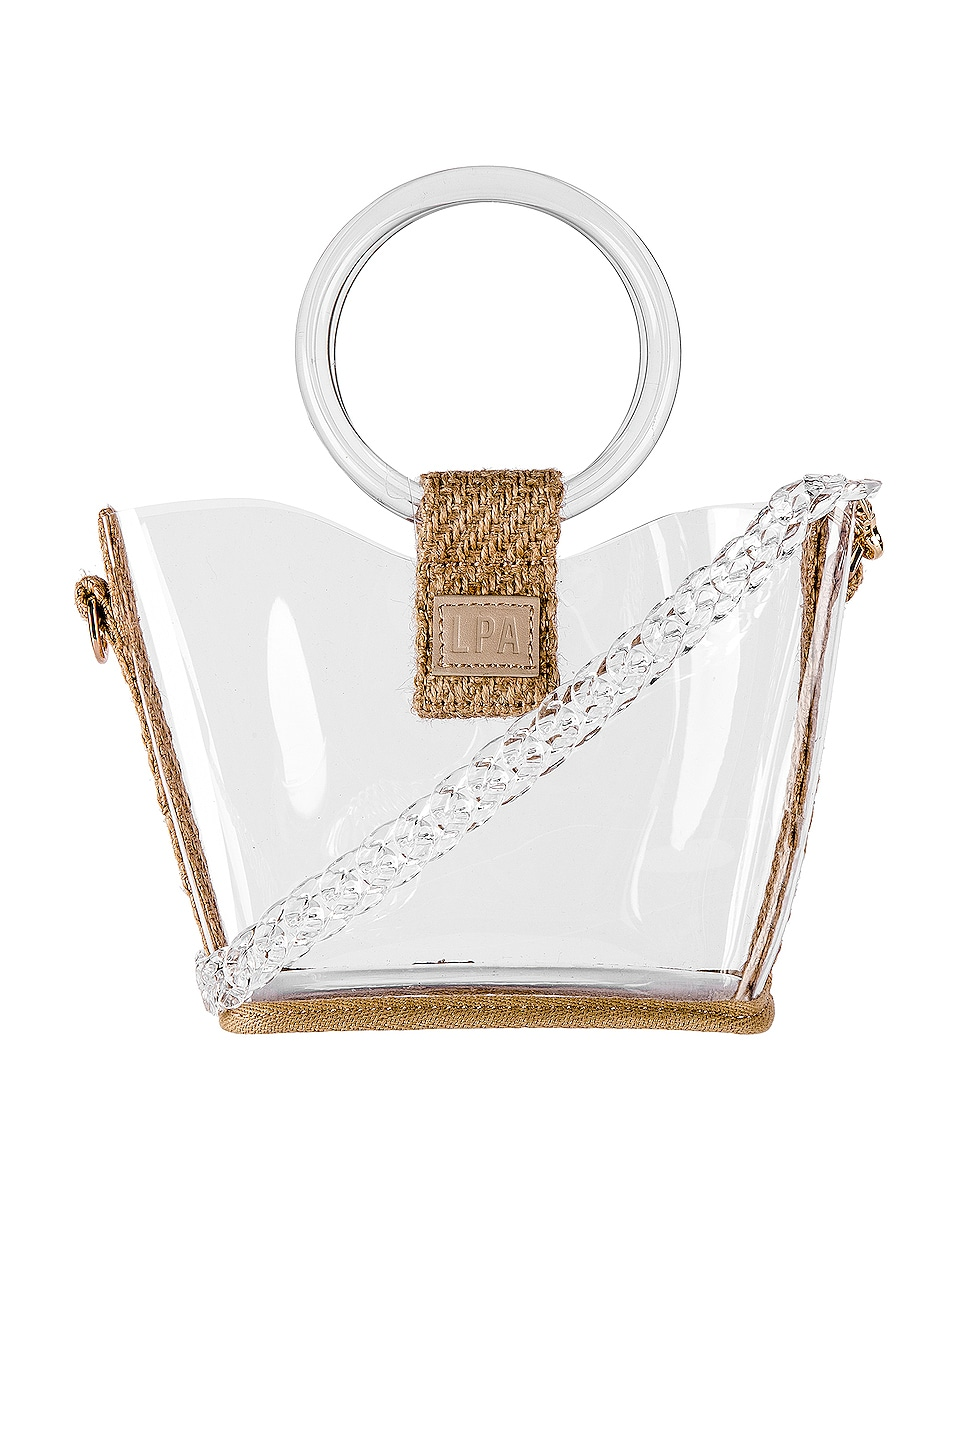 LPA Birdie Bucket Bag in Natural